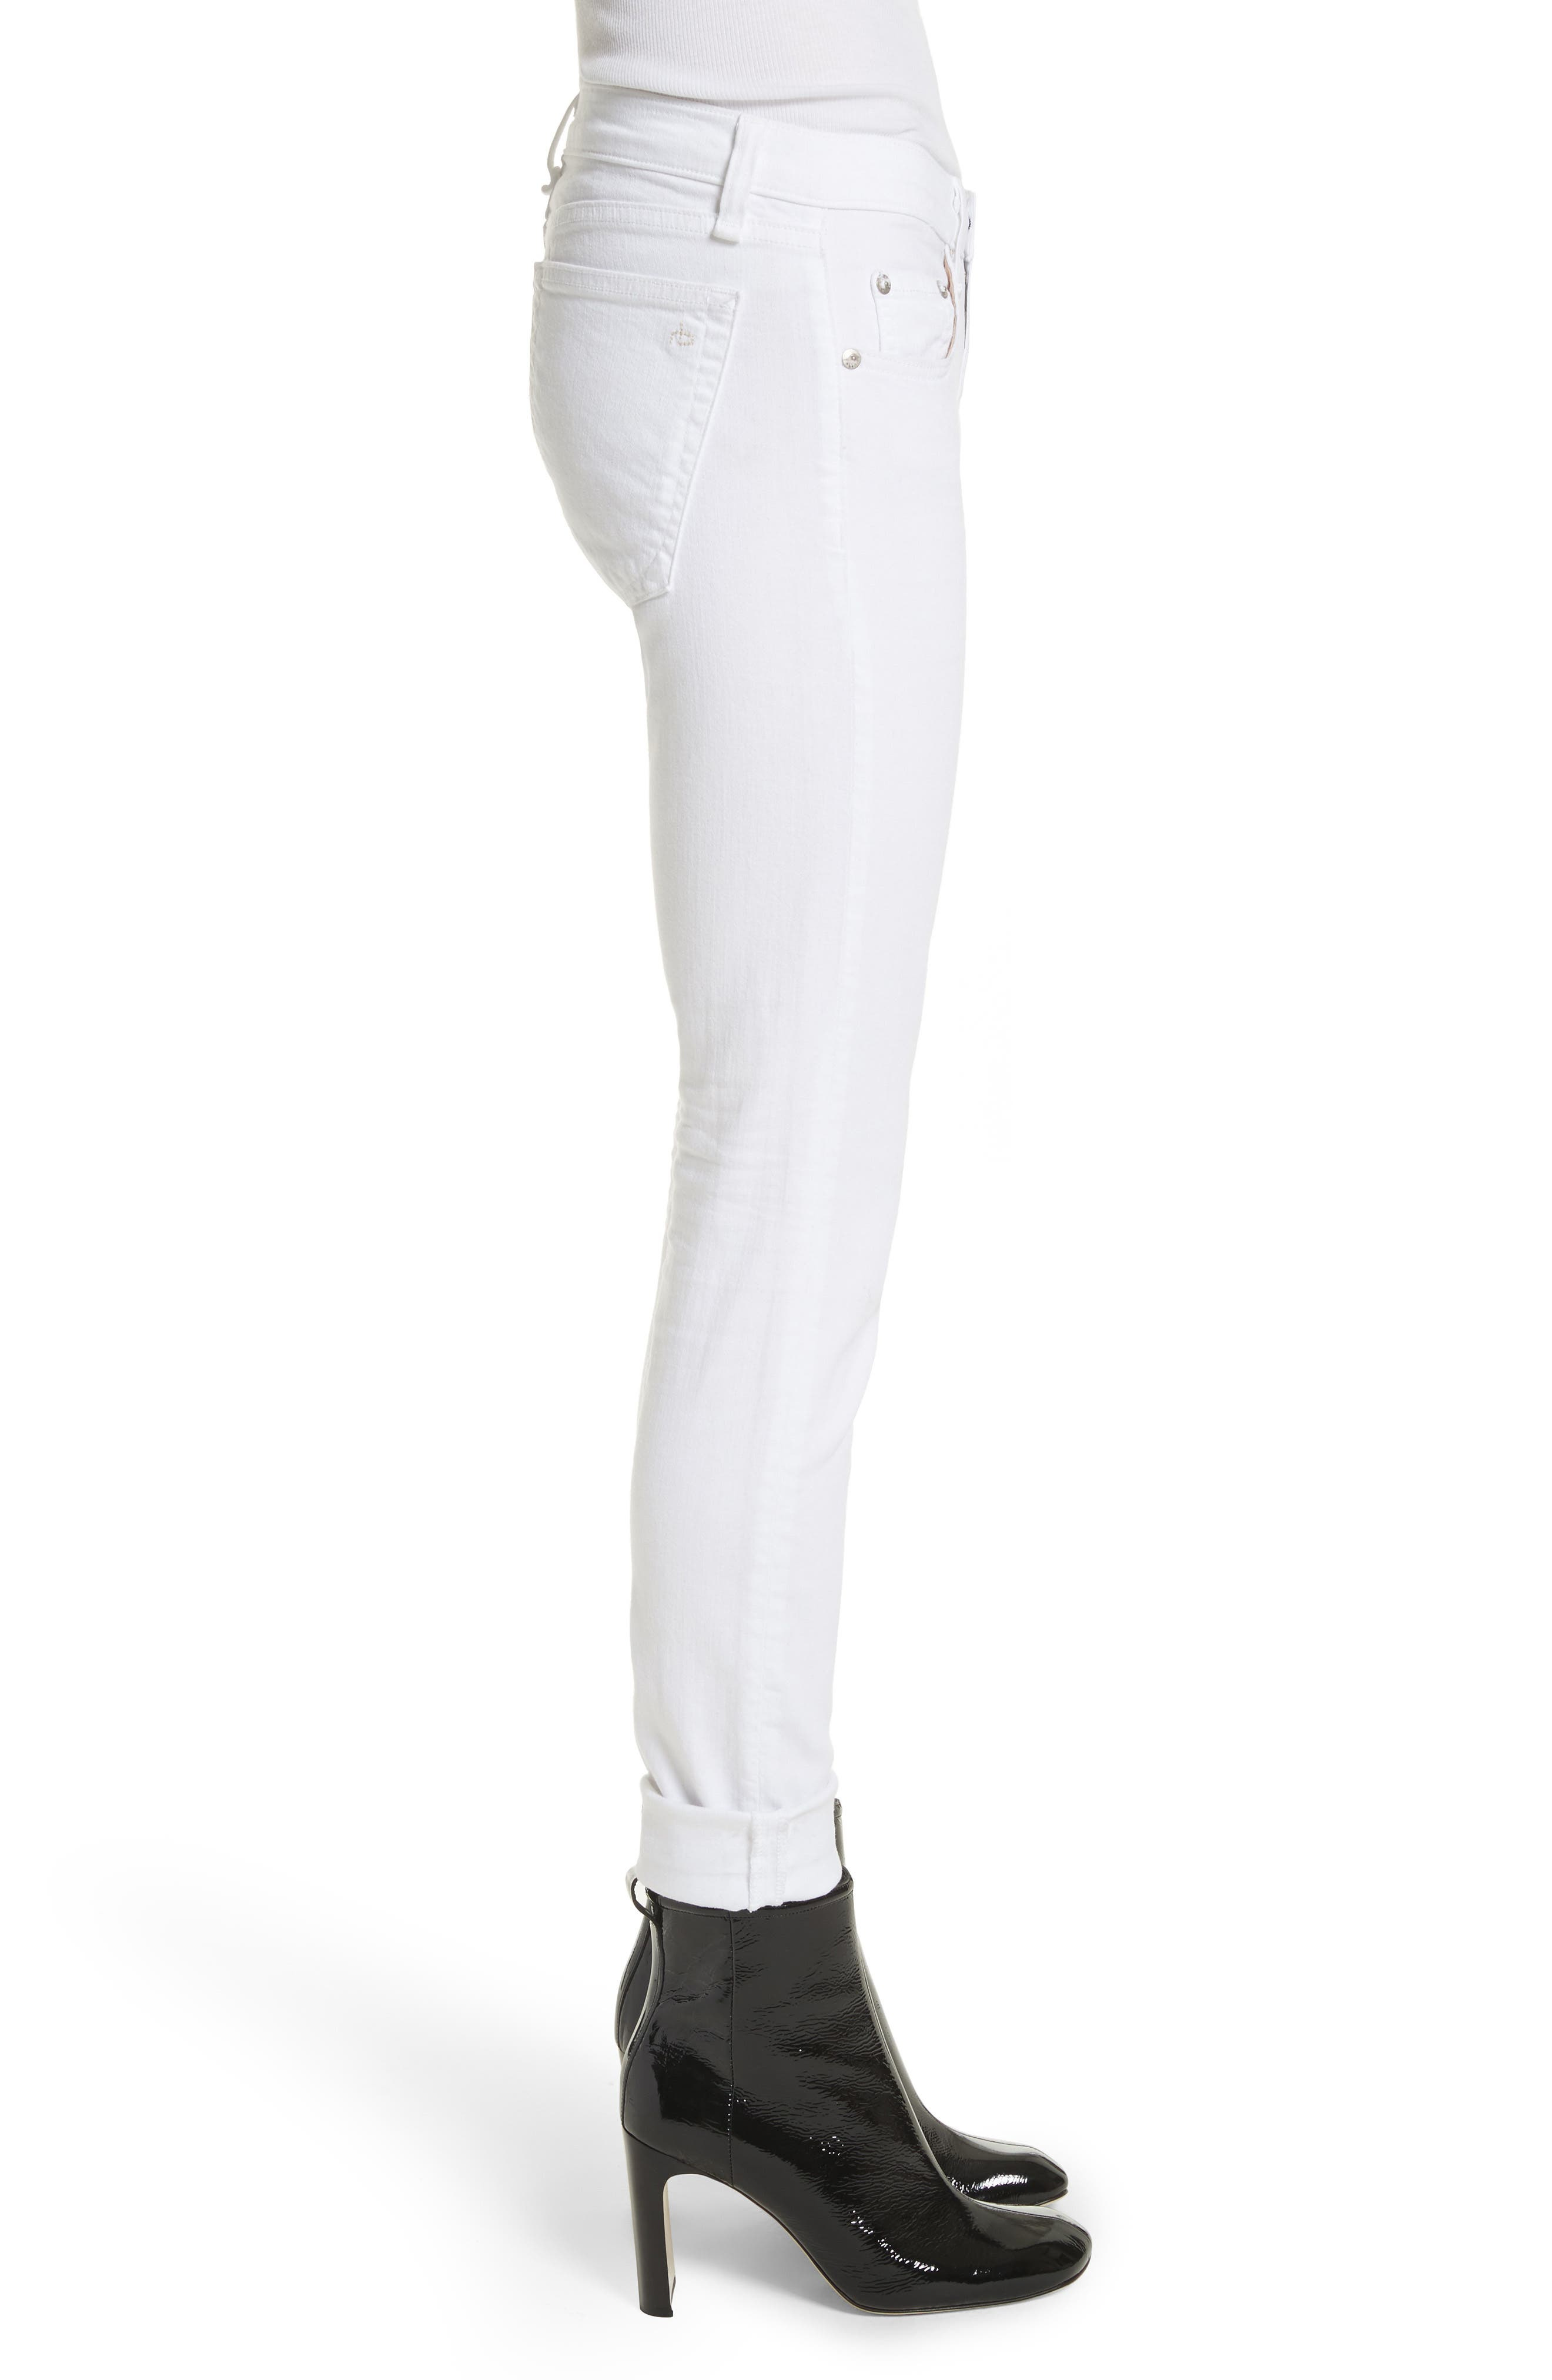 RAG & BONE, 'The Dre' Skinny Jeans, Alternate thumbnail 4, color, BRIGHT WHITE